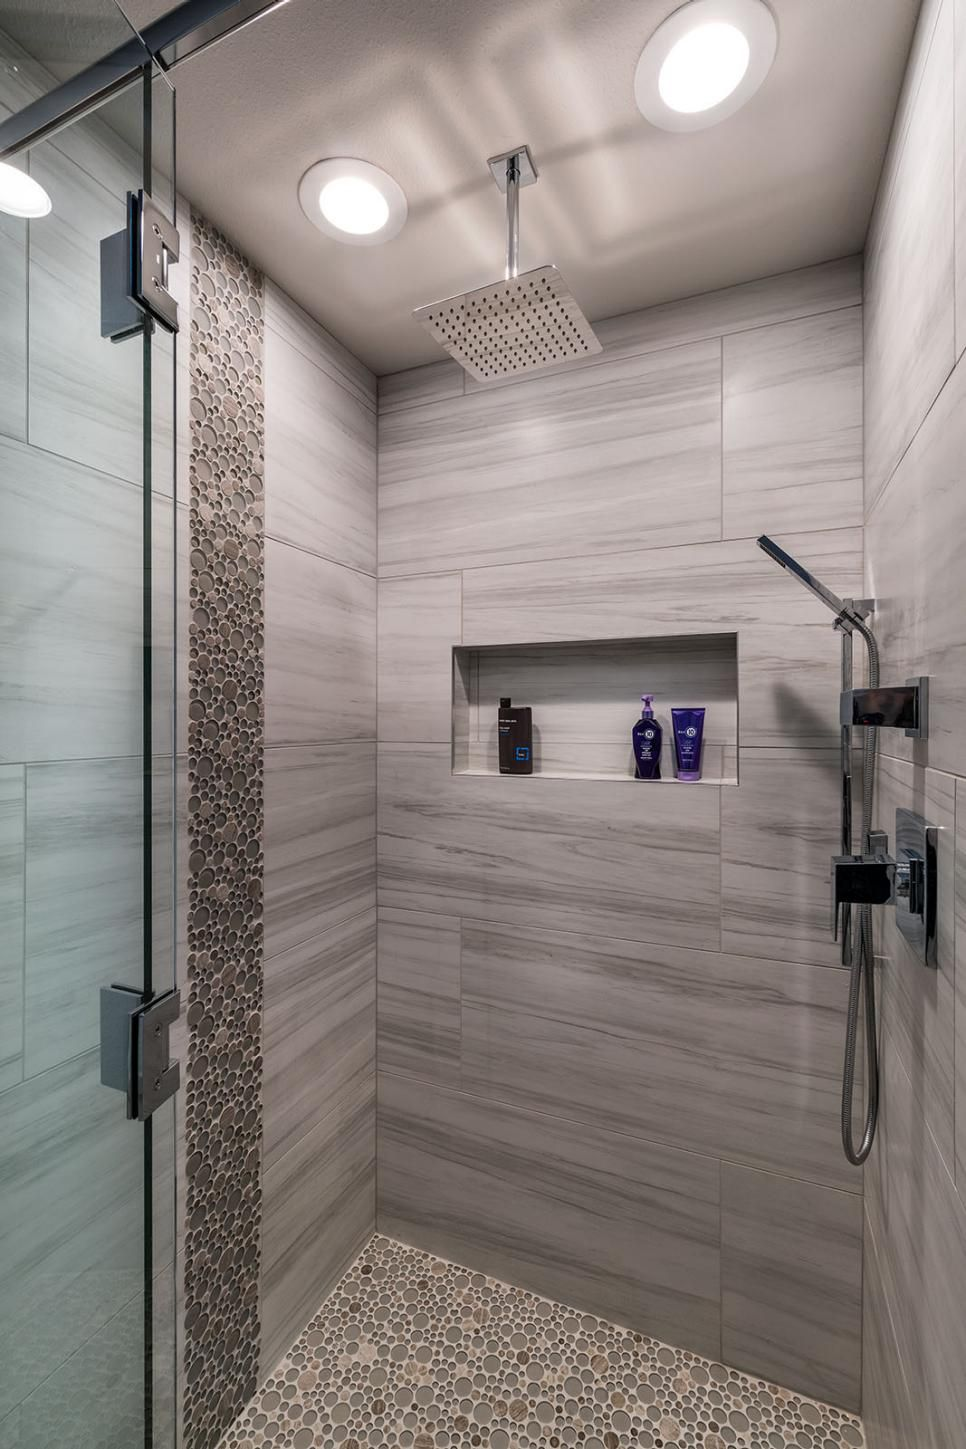 Round Tiles Give A Pebbled Look And Feel To This Stylish Walk In Shower With A Luxurious Waterfall Bathroom Shower Design Modern Shower Bathroom Remodel Shower